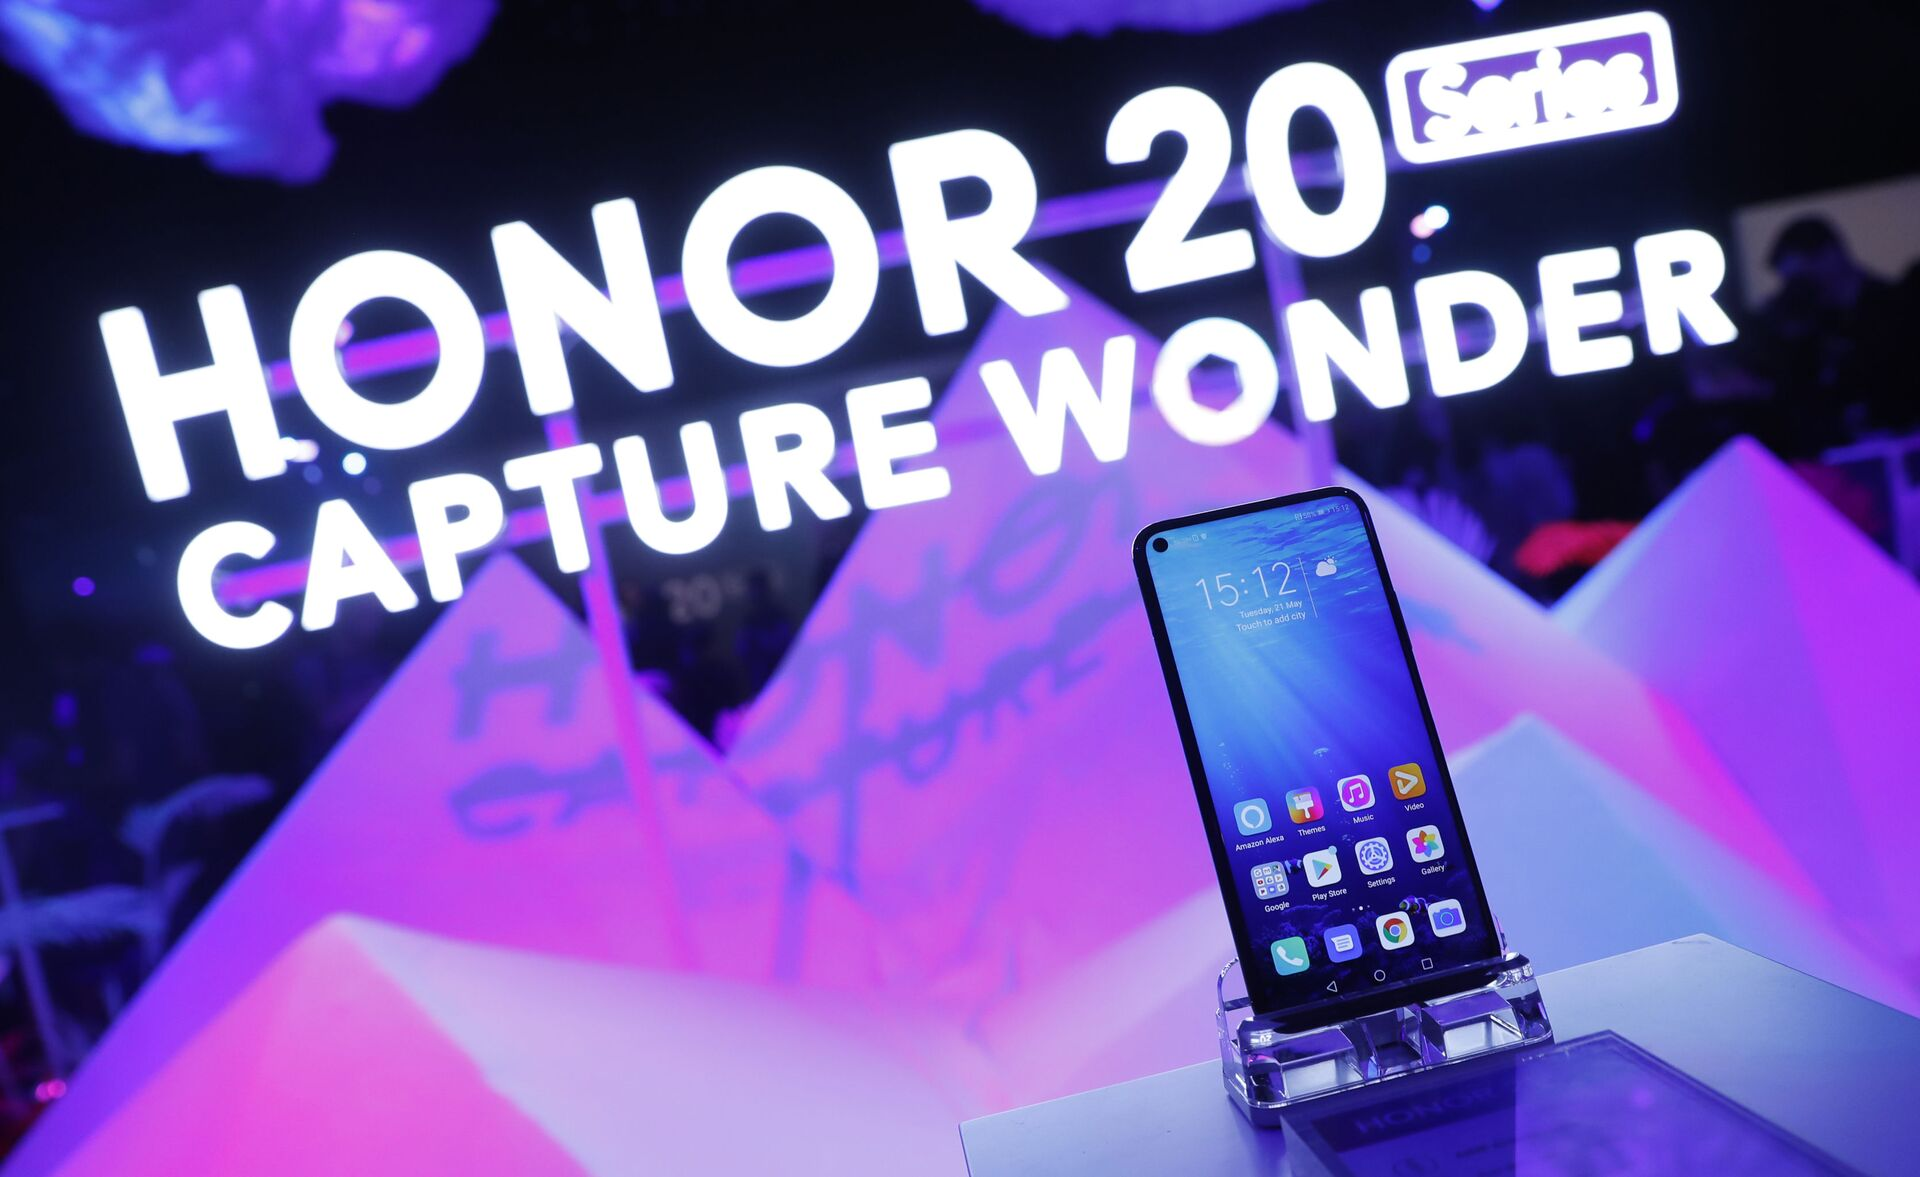 Members of the invited audience of fans and media try out the new Honor 20 series of phones following their global launch in London, Tuesday, May 21, 2019 - Sputnik International, 1920, 07.09.2021